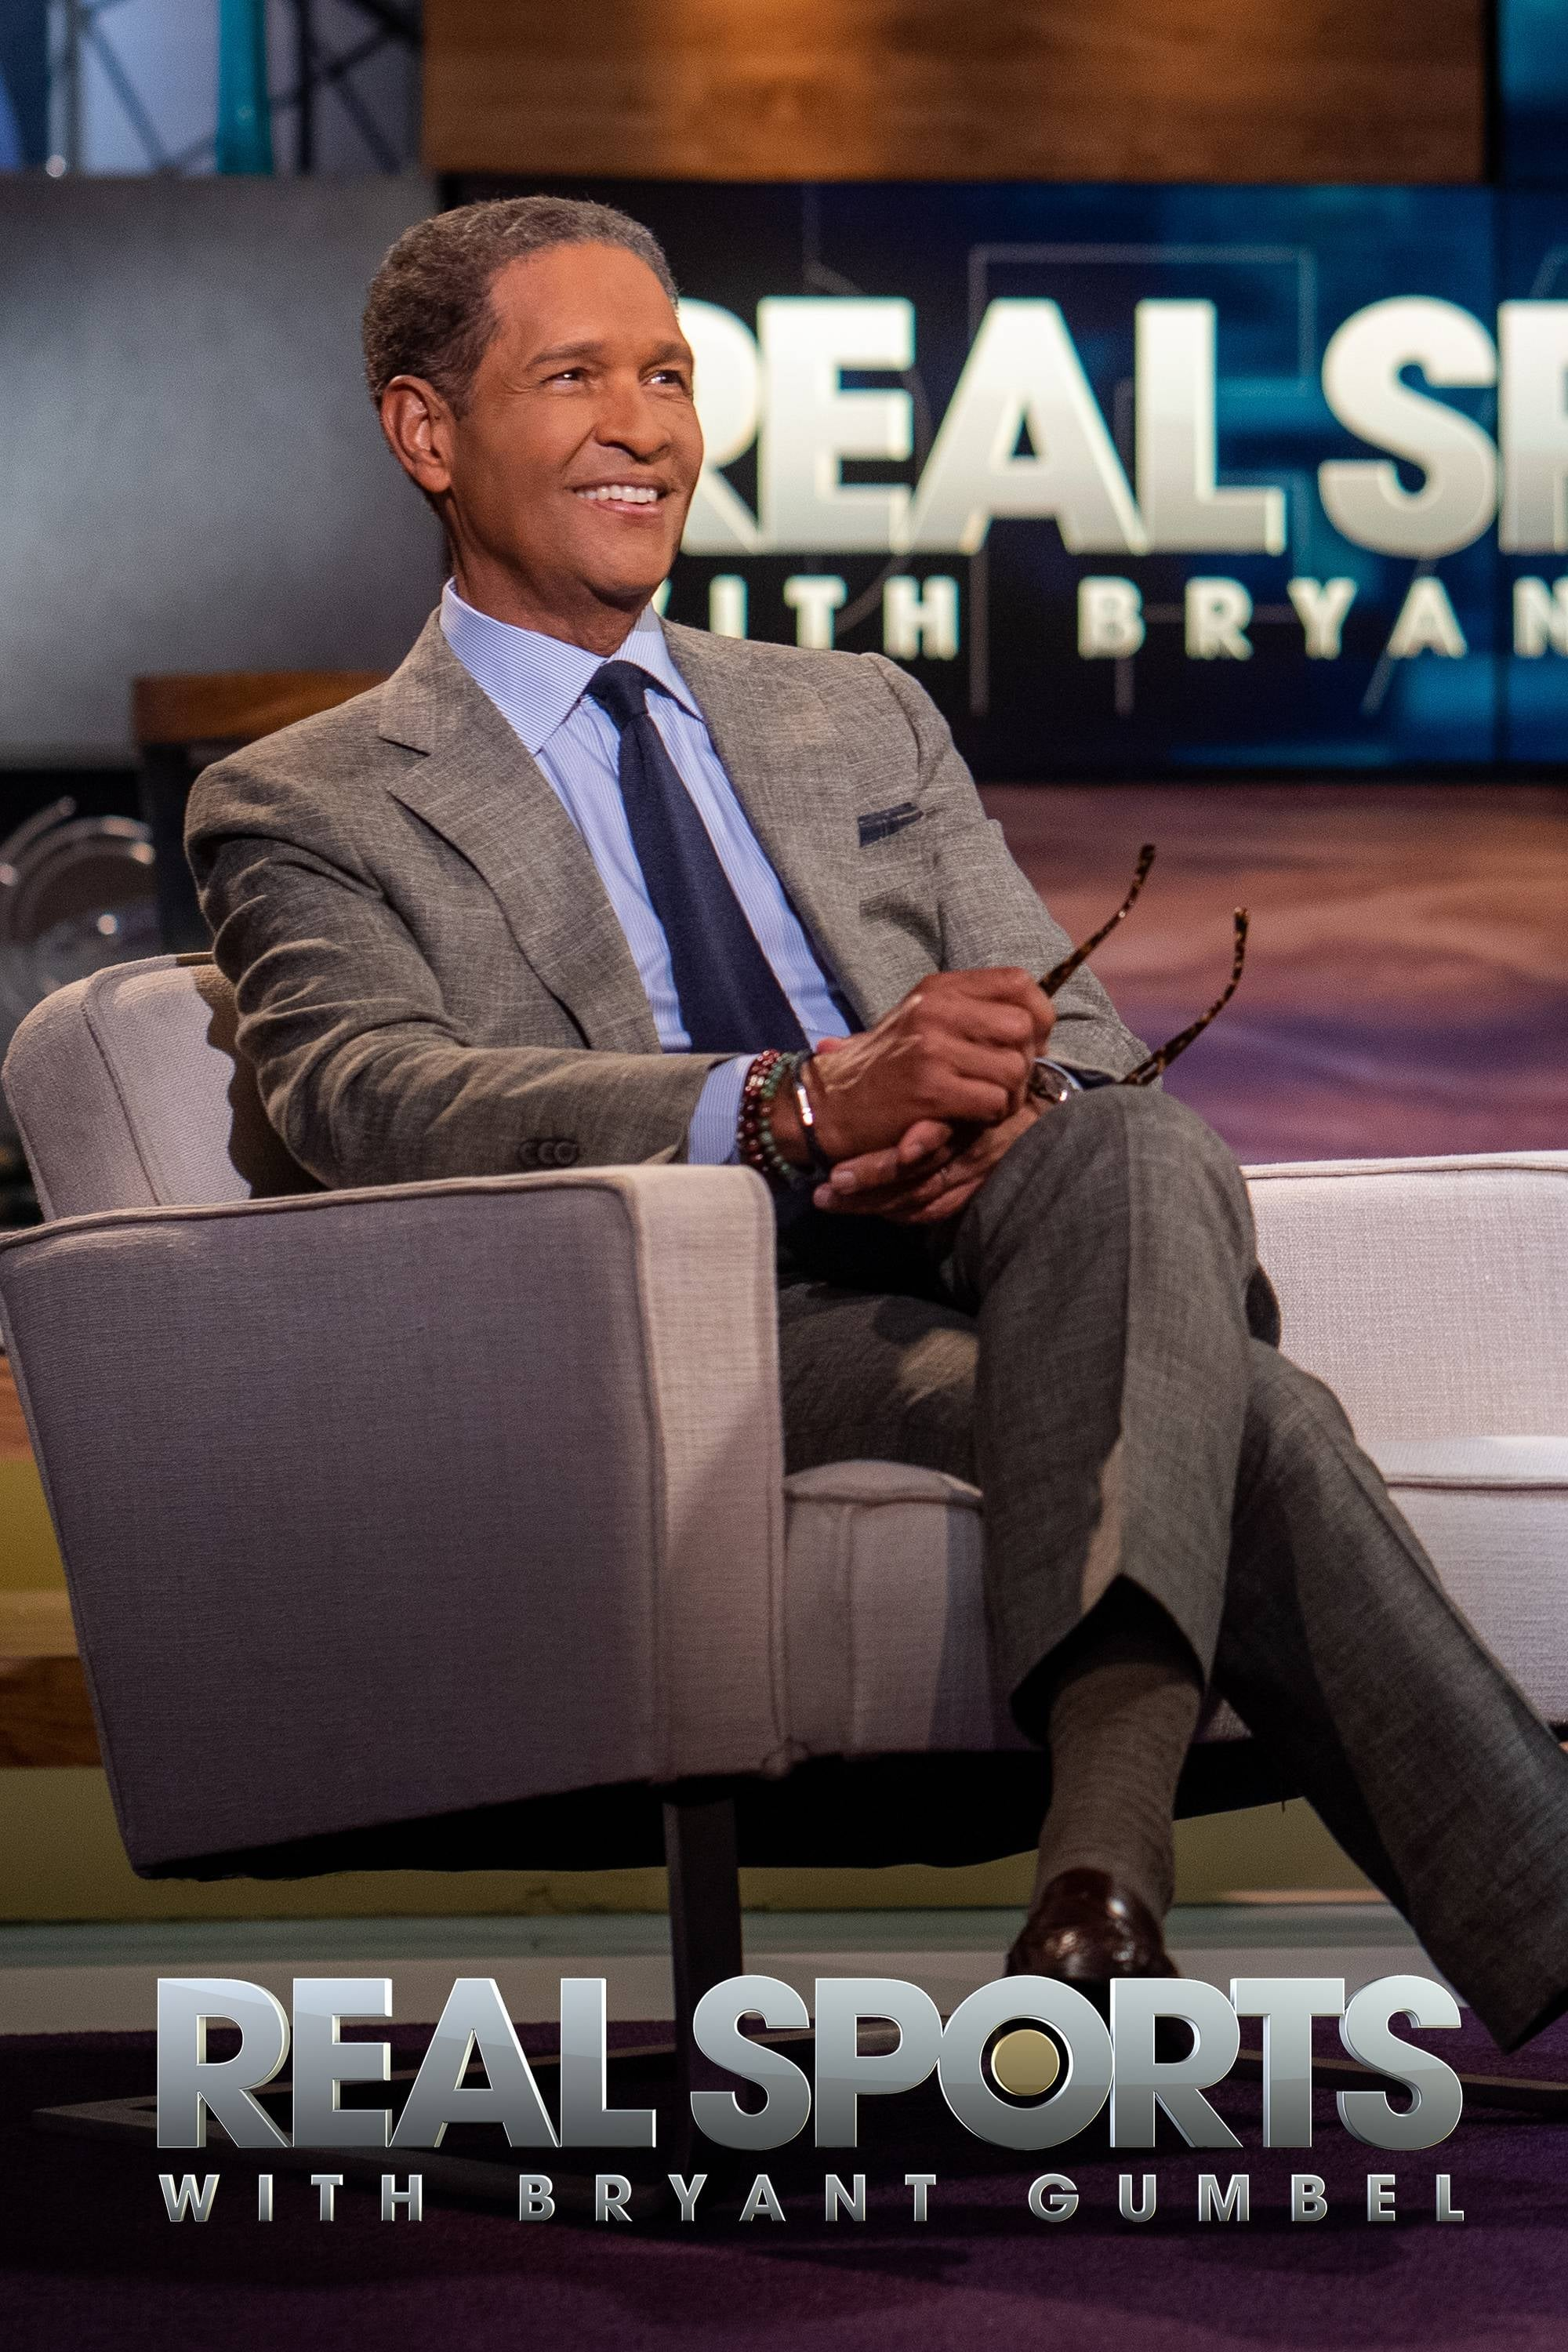 Real Sports with Bryant Gumbel (1995)